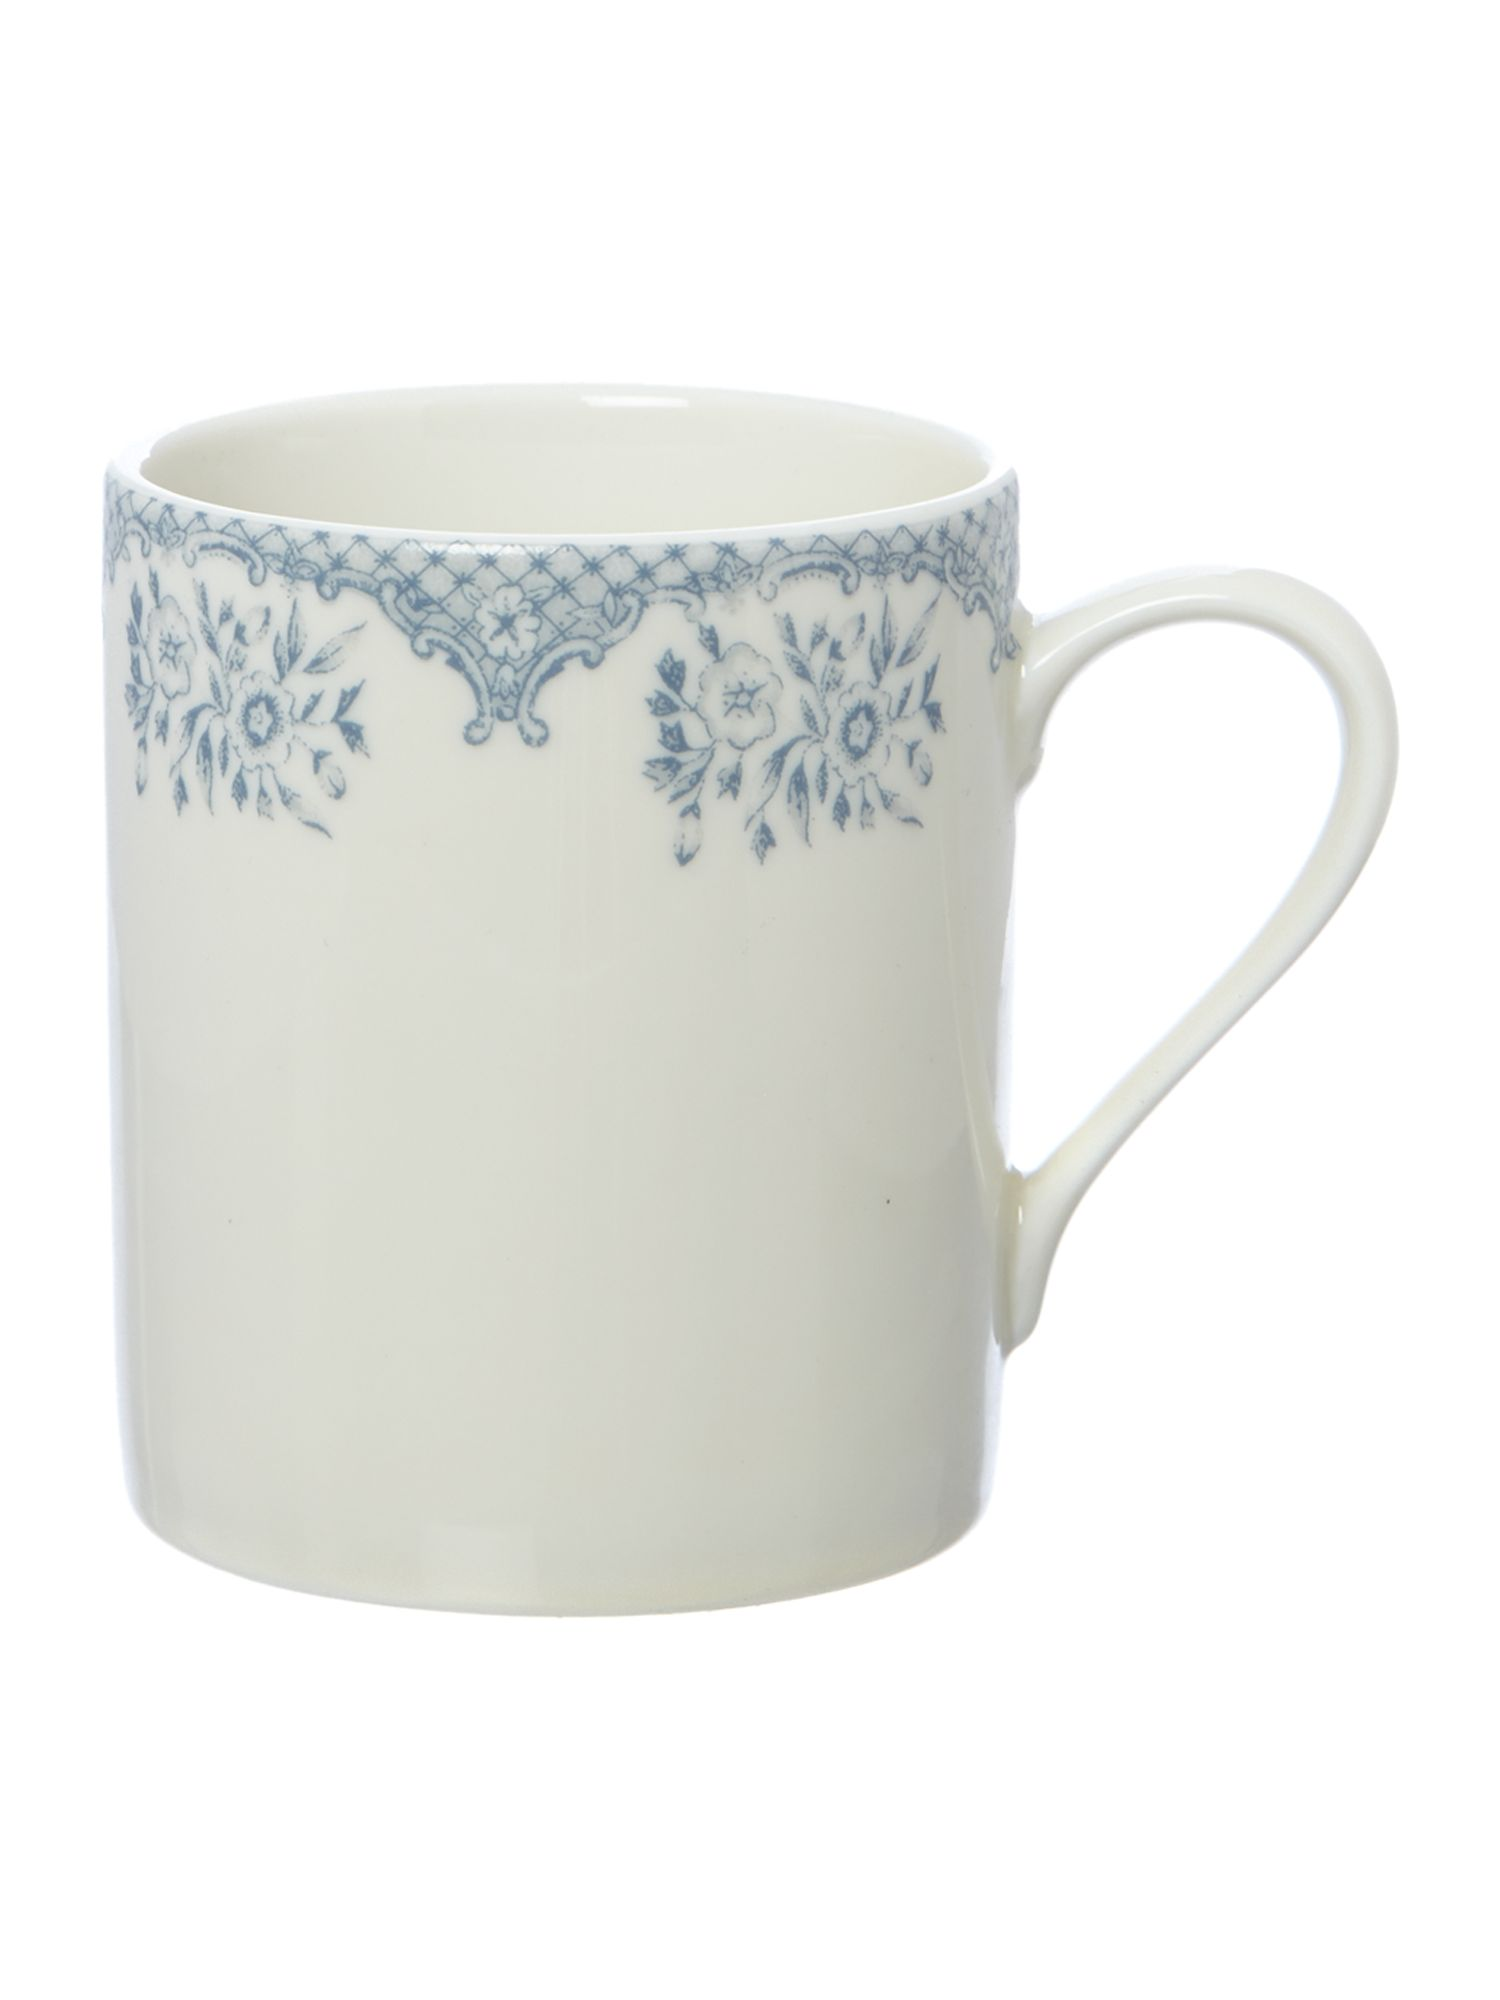 Kew blue large mug